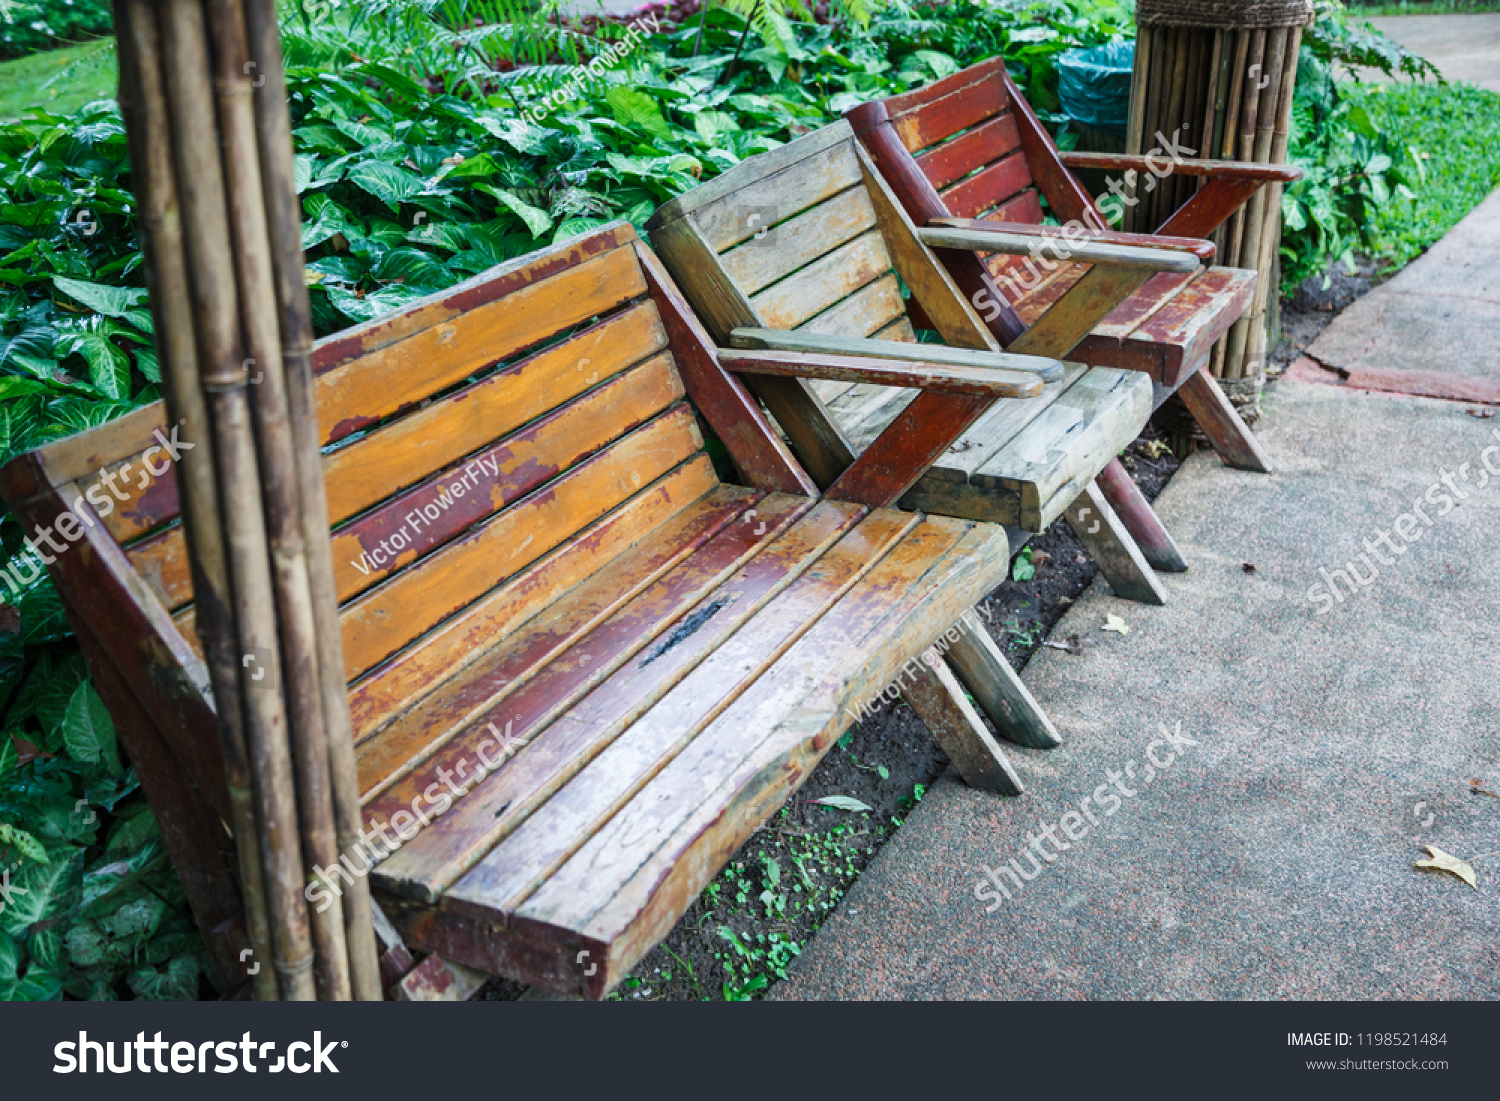 Admirable Architectural Landscaped Design Wooden Bench Chairs Stock Forskolin Free Trial Chair Design Images Forskolin Free Trialorg